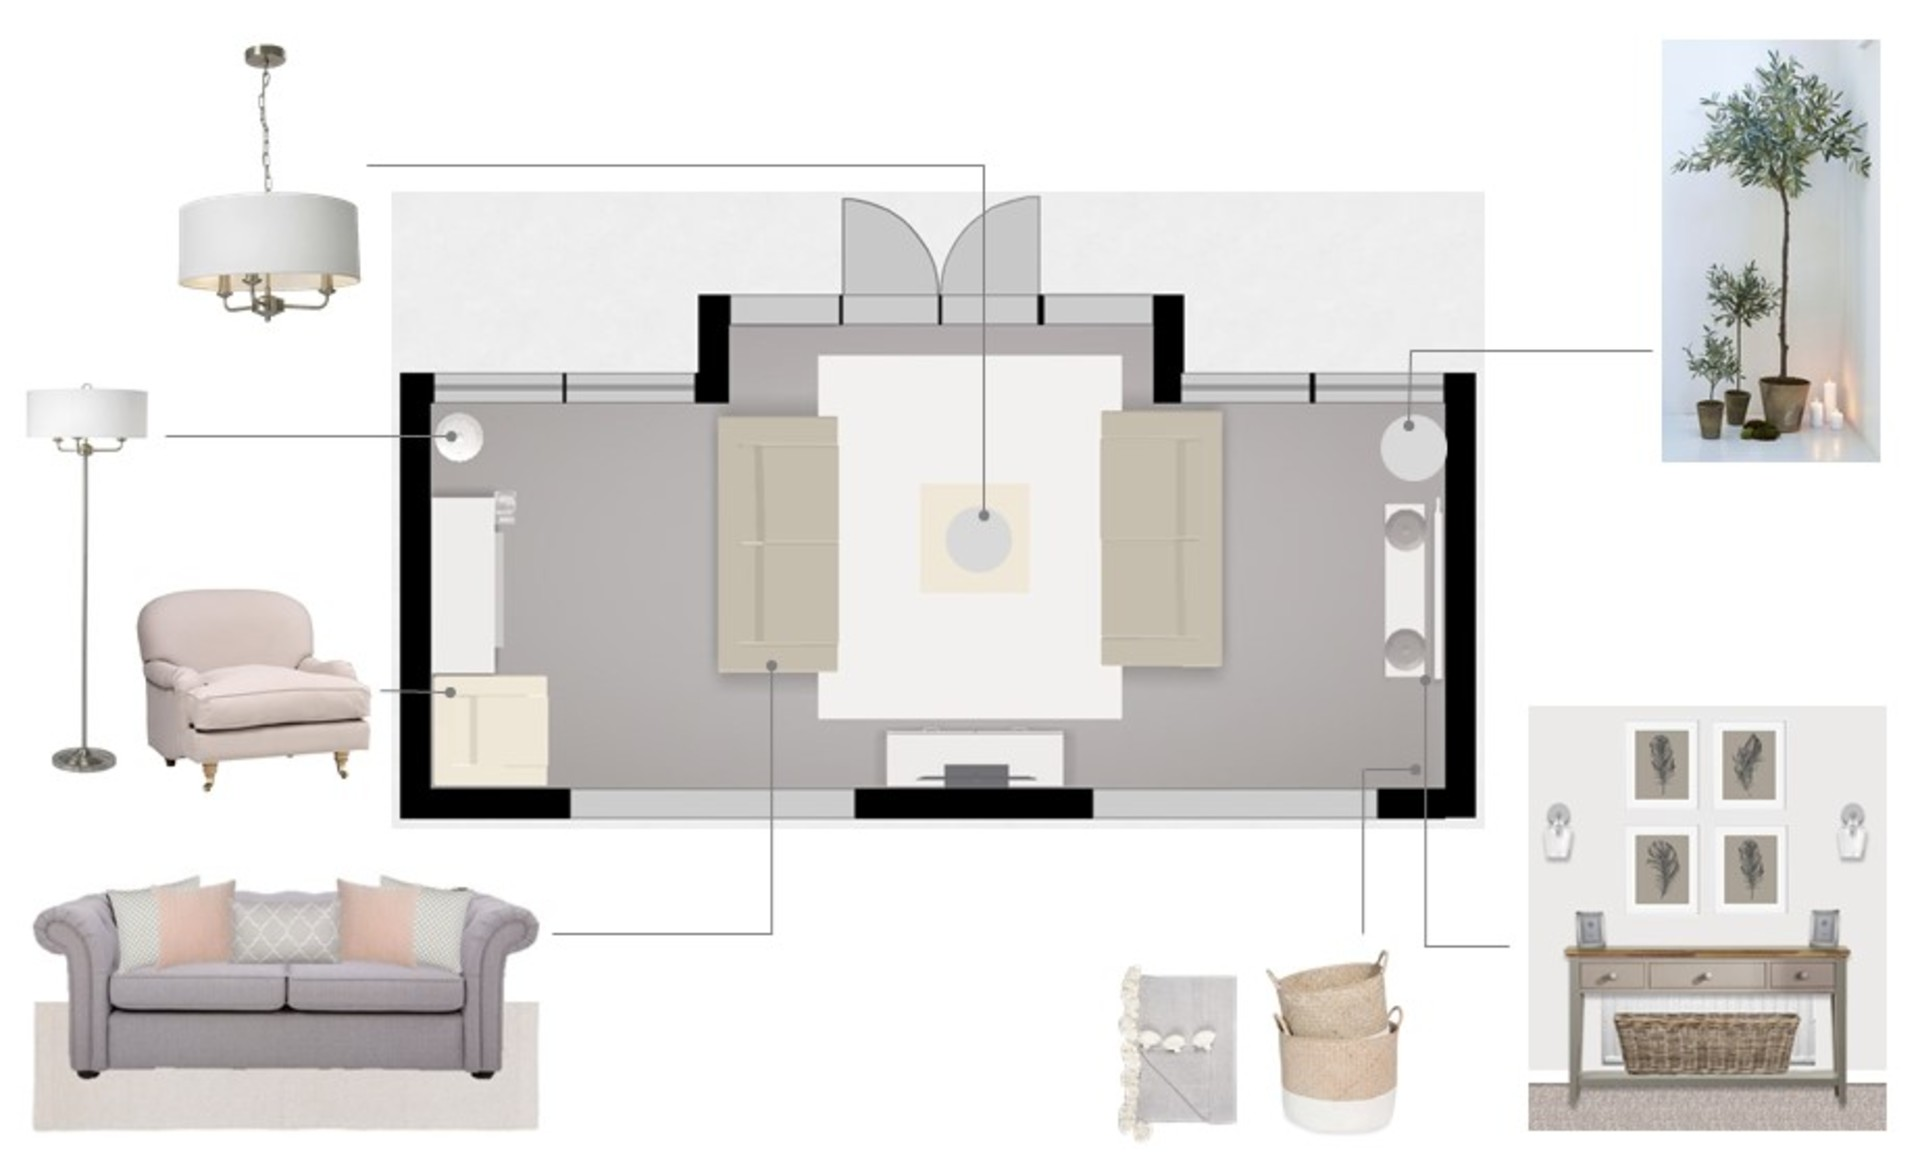 Floor plan to show the living room layout for The Home That Made Me in New England classic style